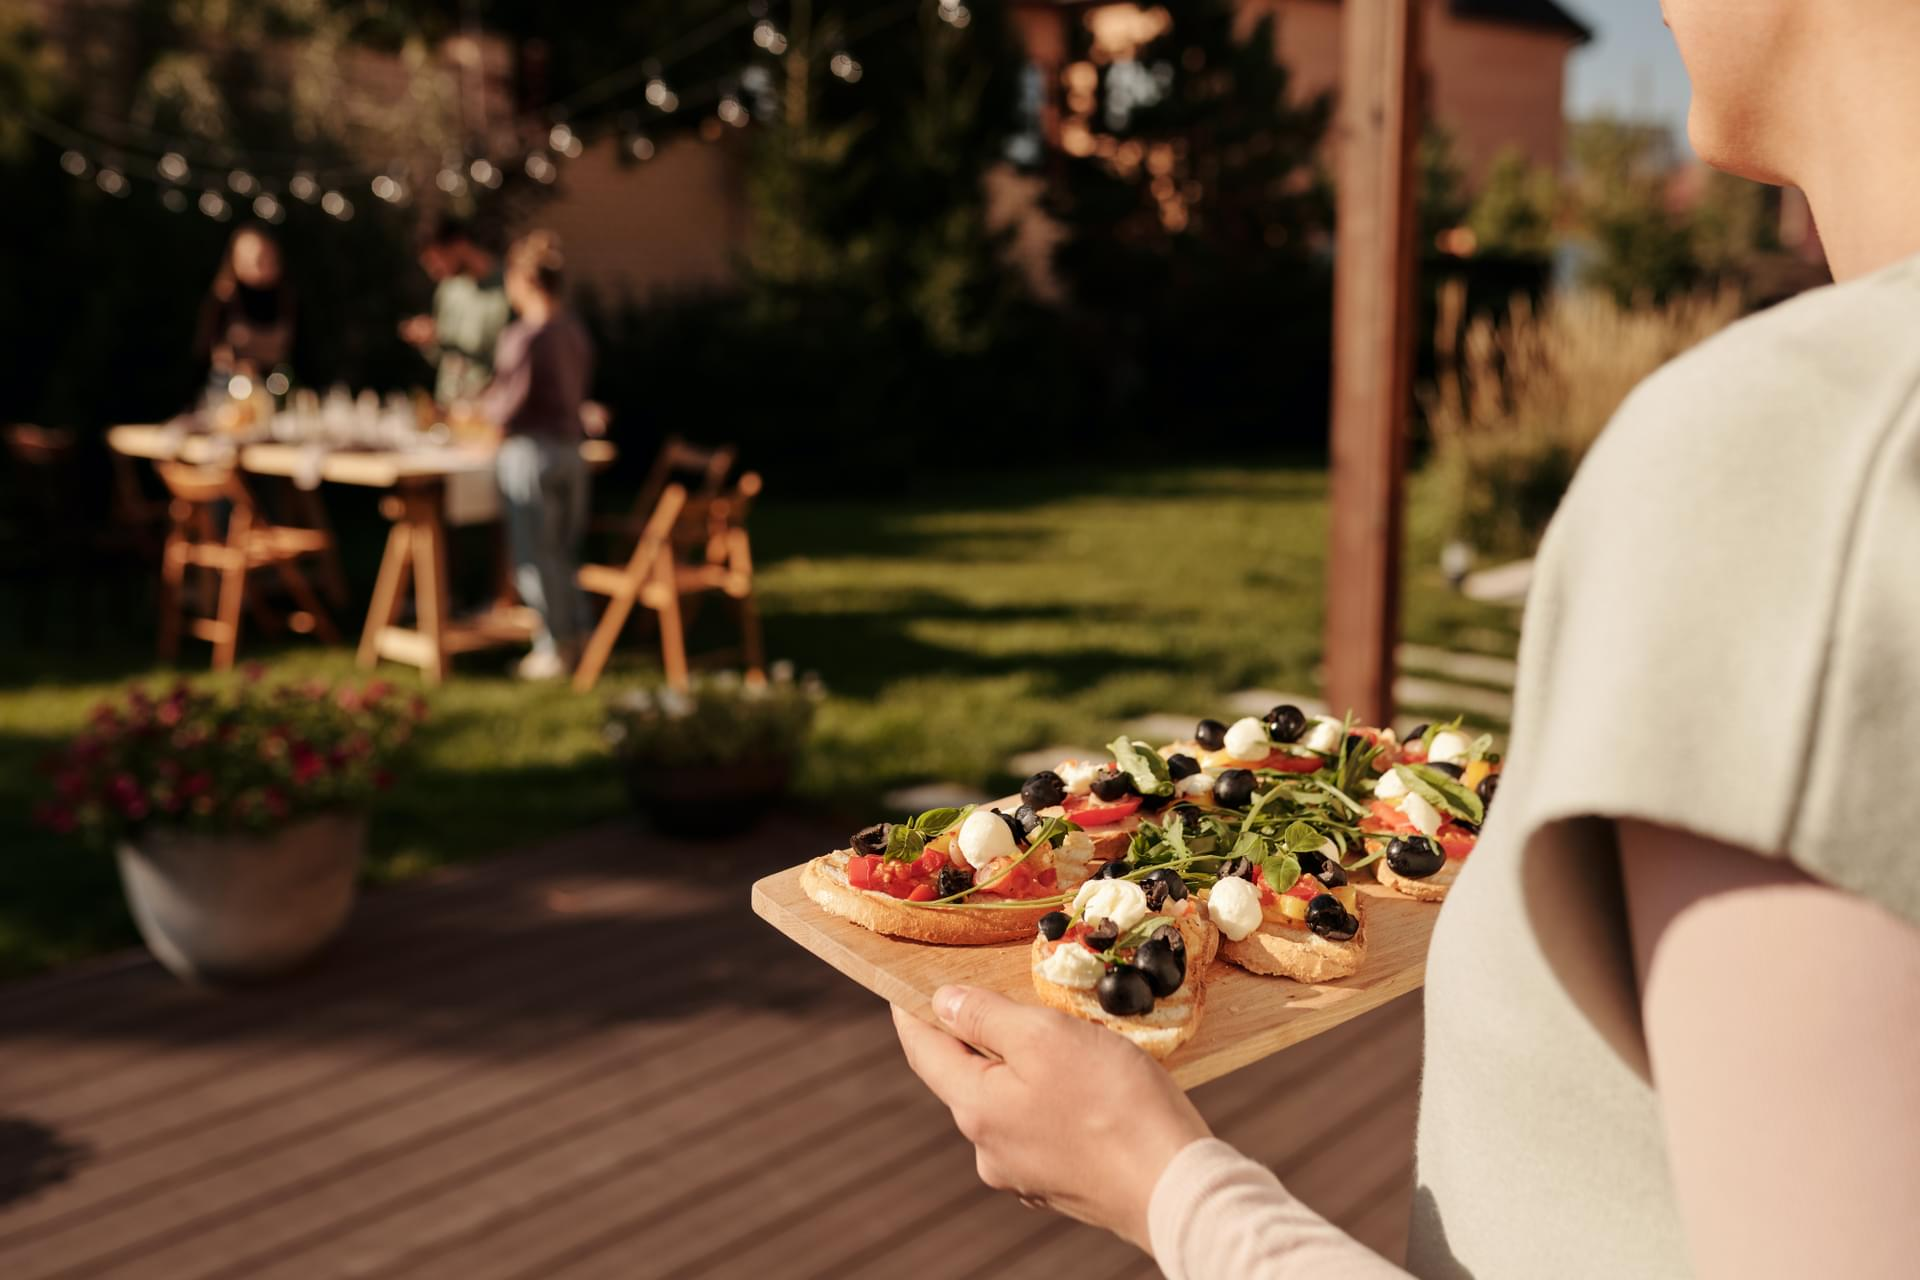 Create An Outdoor Dining Space for Your Home